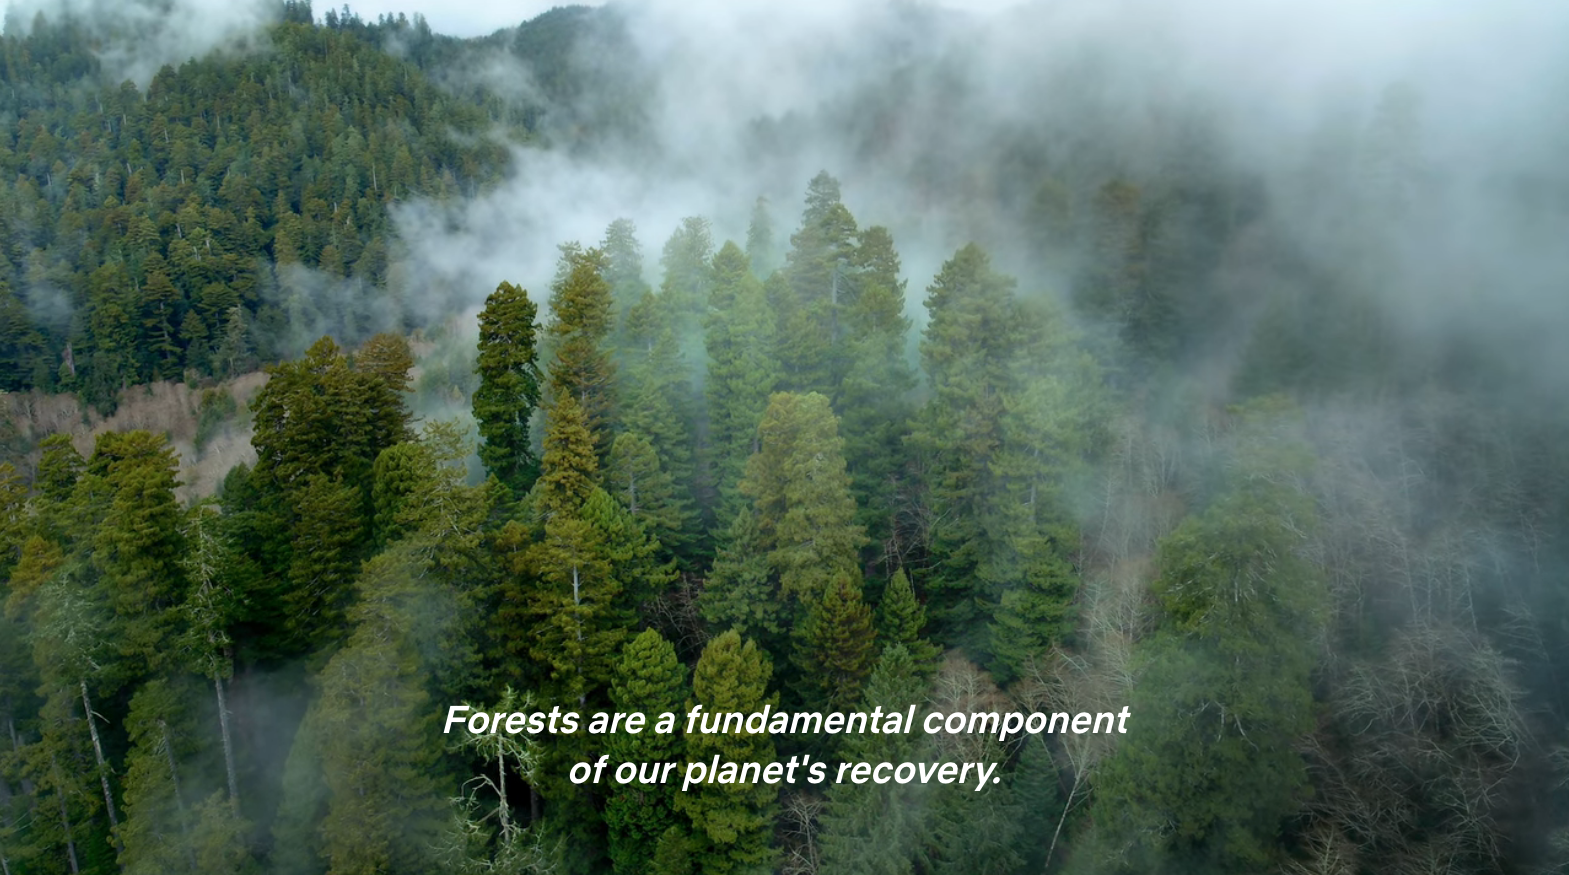 """Aerial view of a pine forest with mist drifting between the trees, and caption: """"Forests are a fundamental component of our planet's recovery""""."""